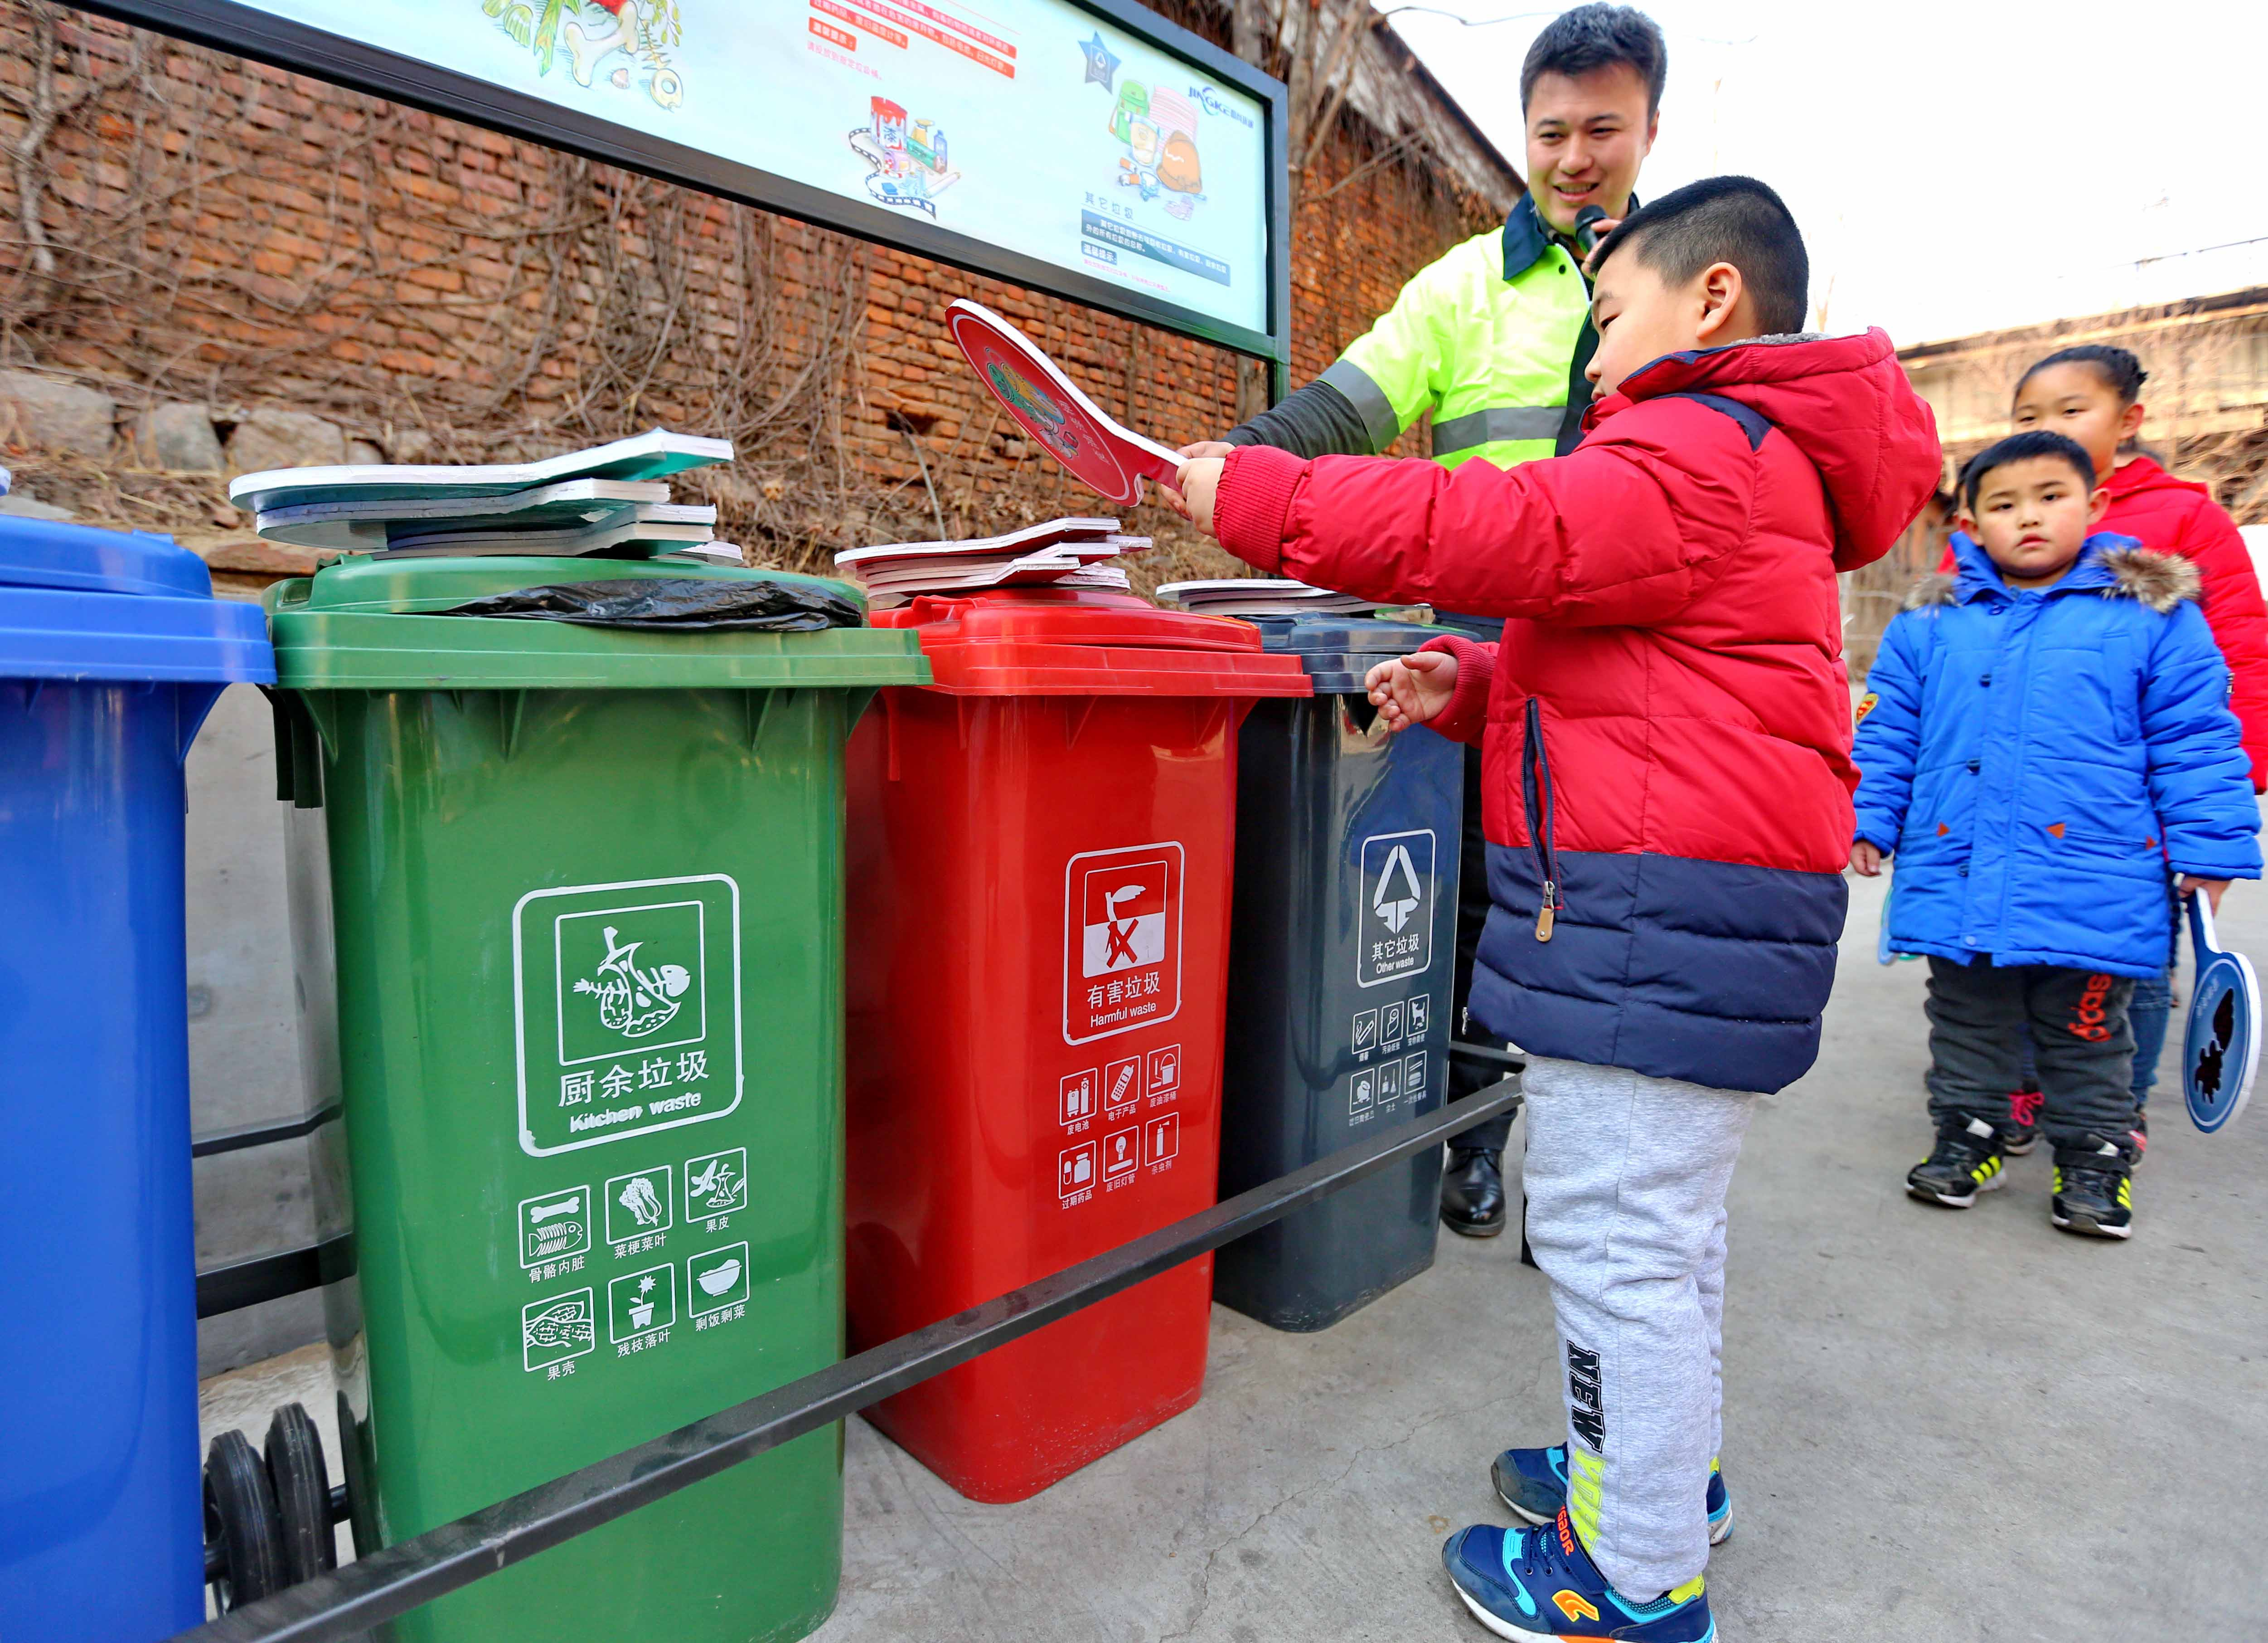 A community worker teaches children to sort waste during an awareness campaign in February in Qinhuangdao, Hebei province. Photo: IC